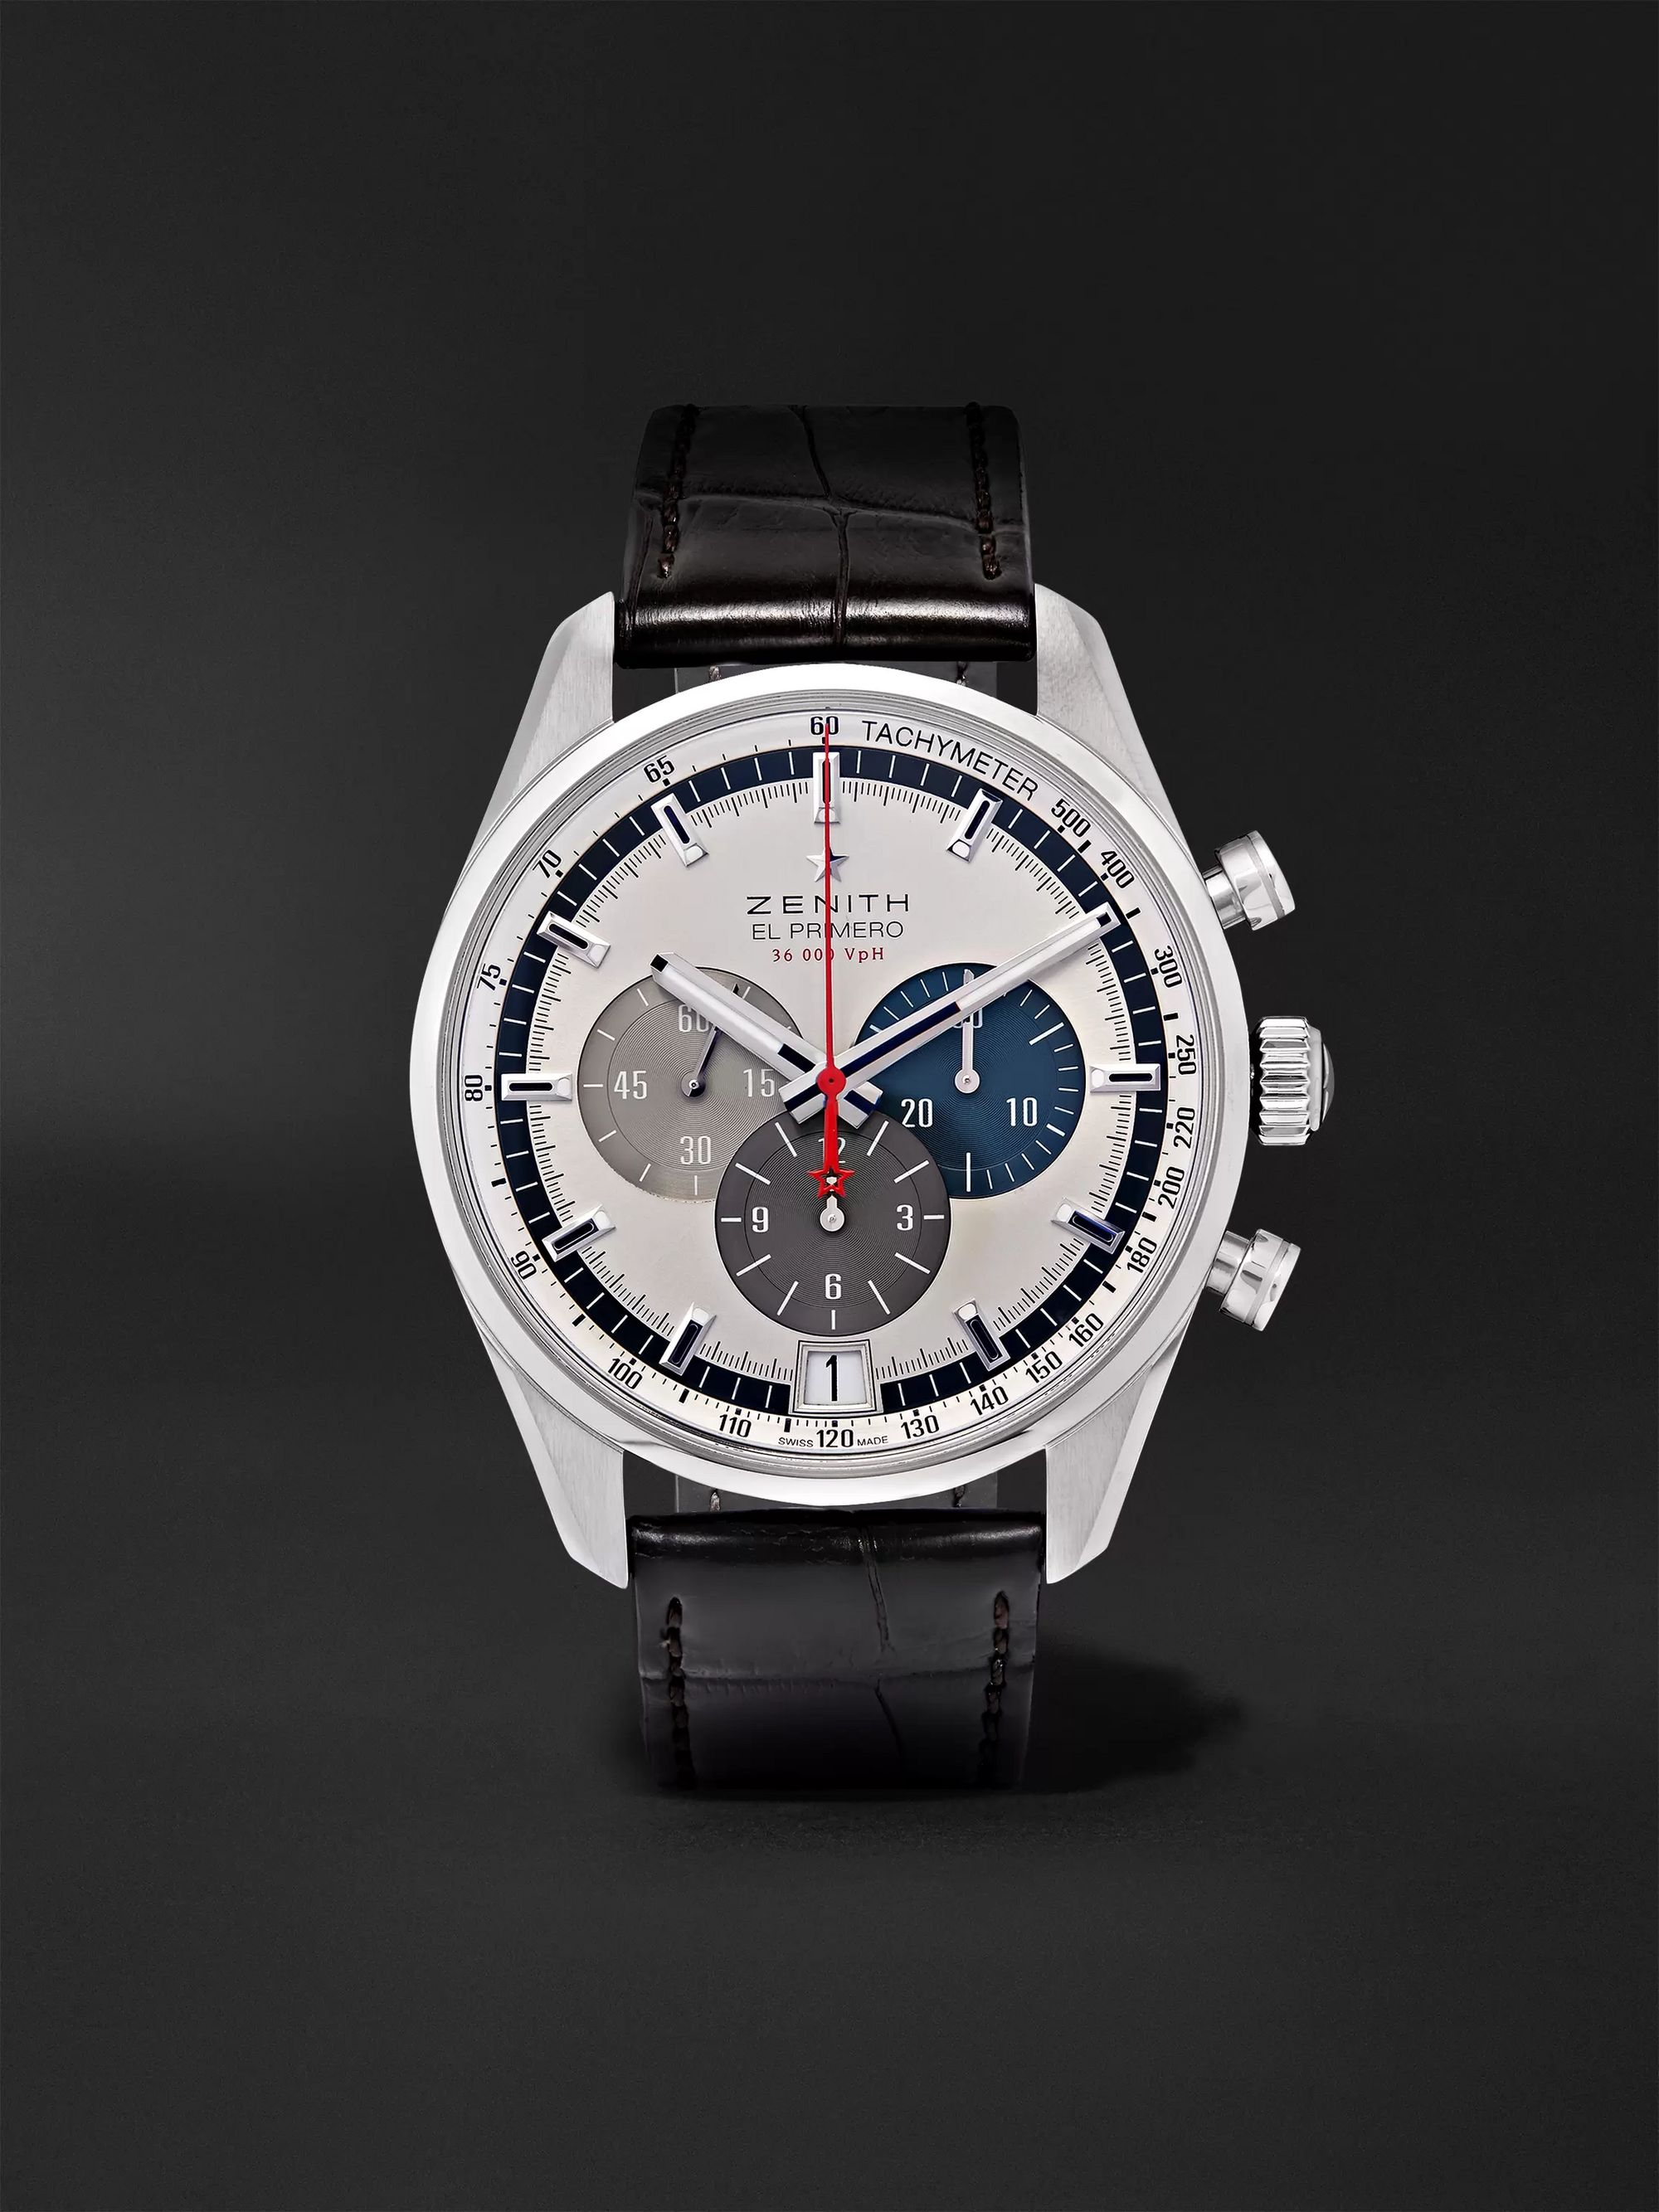 ZENITH El Primero Automatic 42mm Stainless Steel and Alligator Watch, Ref. No. 03.2040.400/69.C494